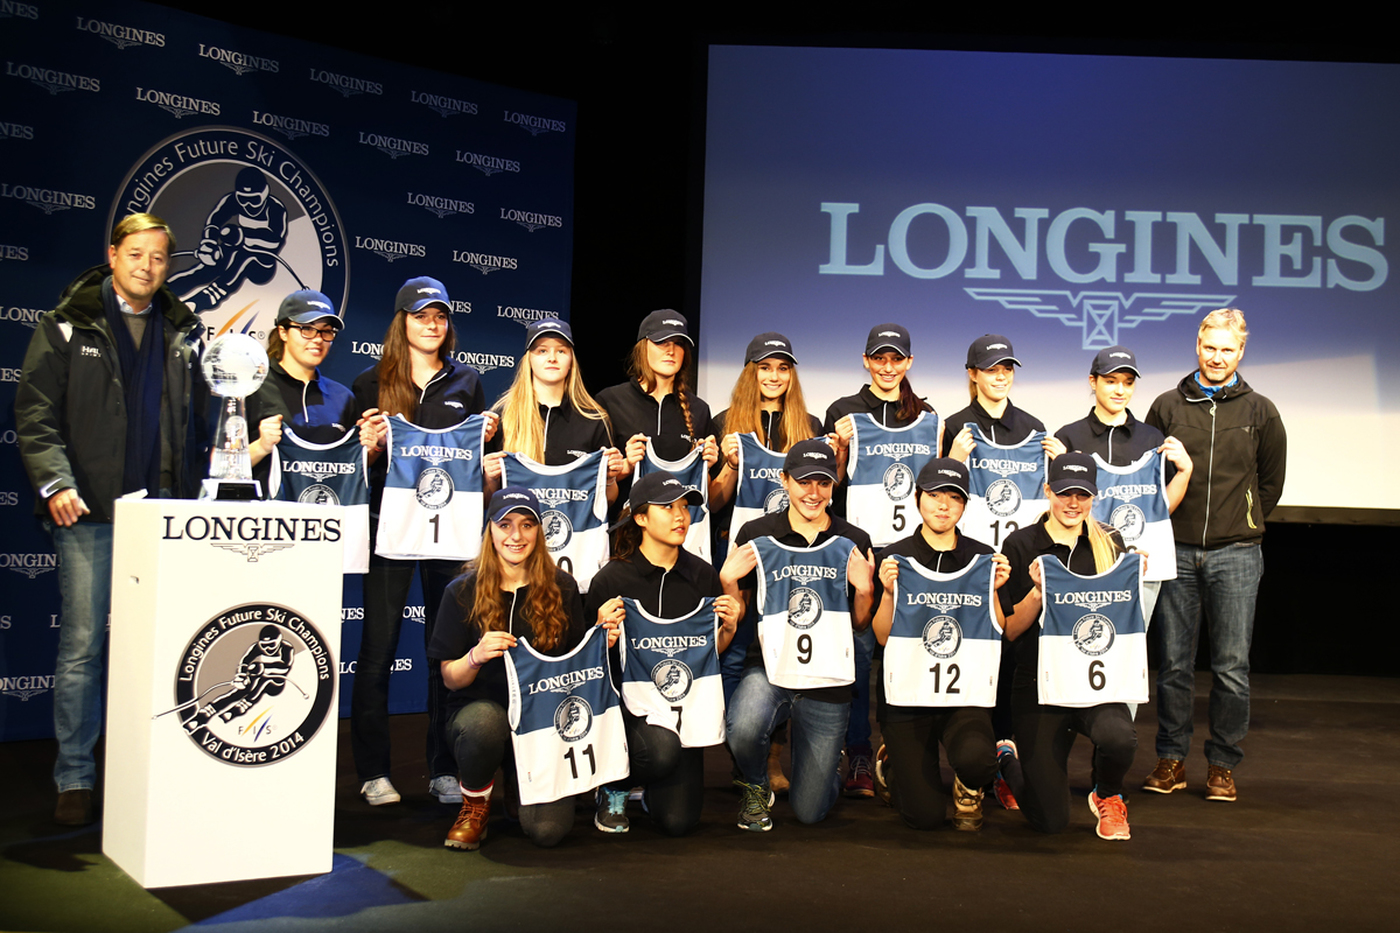 Longines Alpine Skiing Event: Second edition of the Longines Future Ski Champions – A successful 100% female competition in Val d'Isère 6